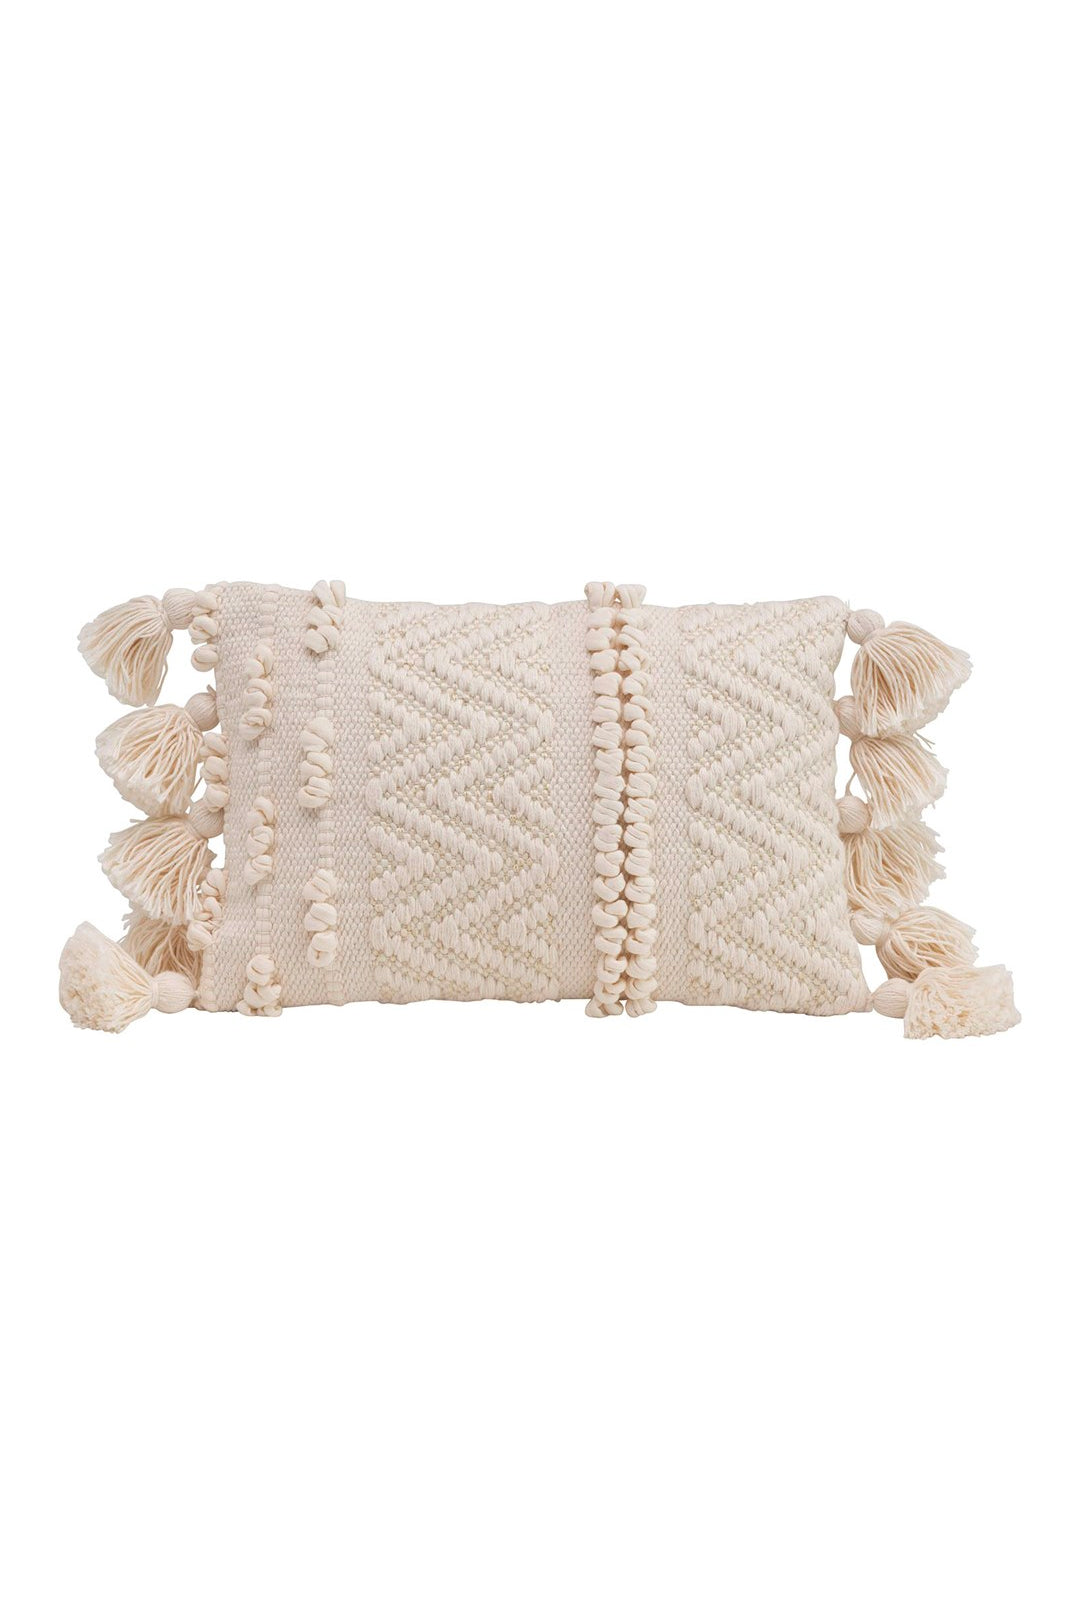 textured lumbar pillow with tassels